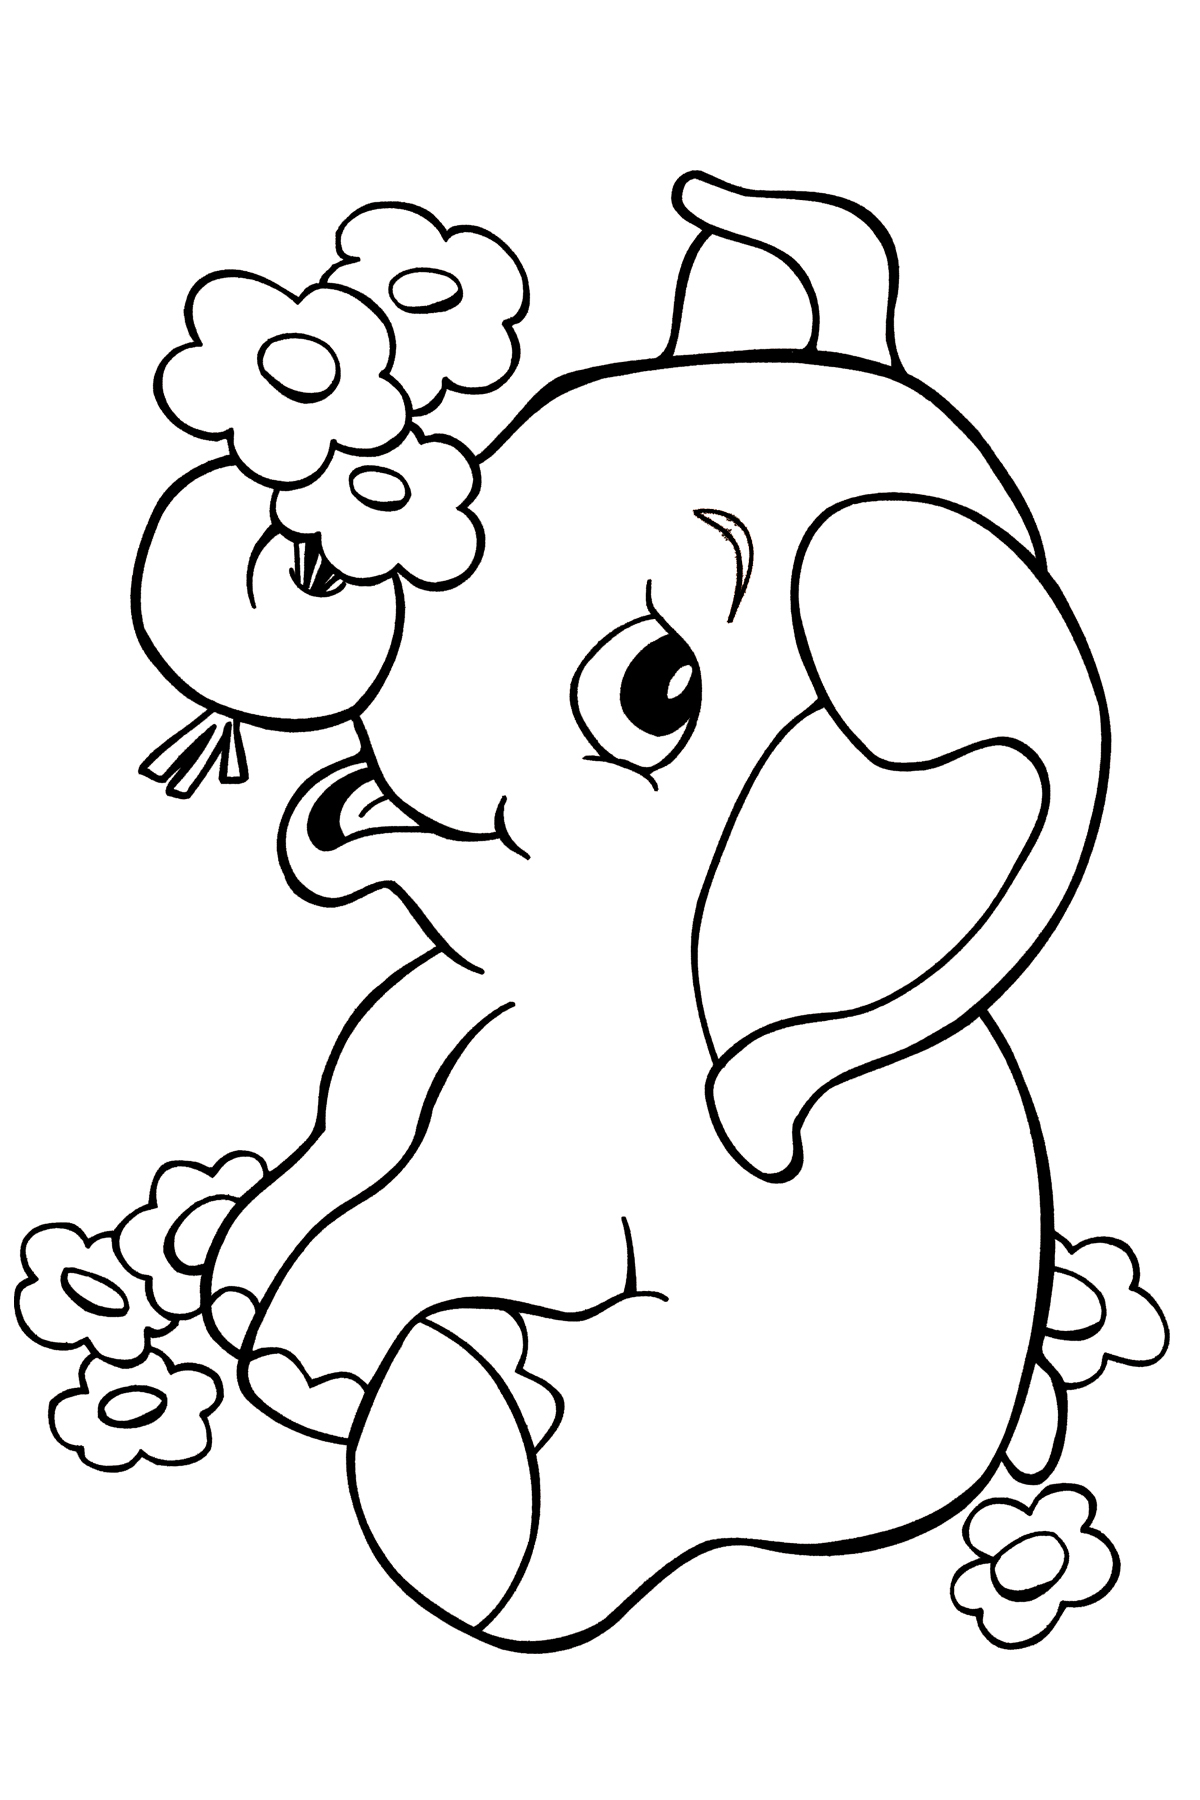 Free Printable Elephant Coloring Pages For Kids Animal Place Printable Elephant Coloring Pages